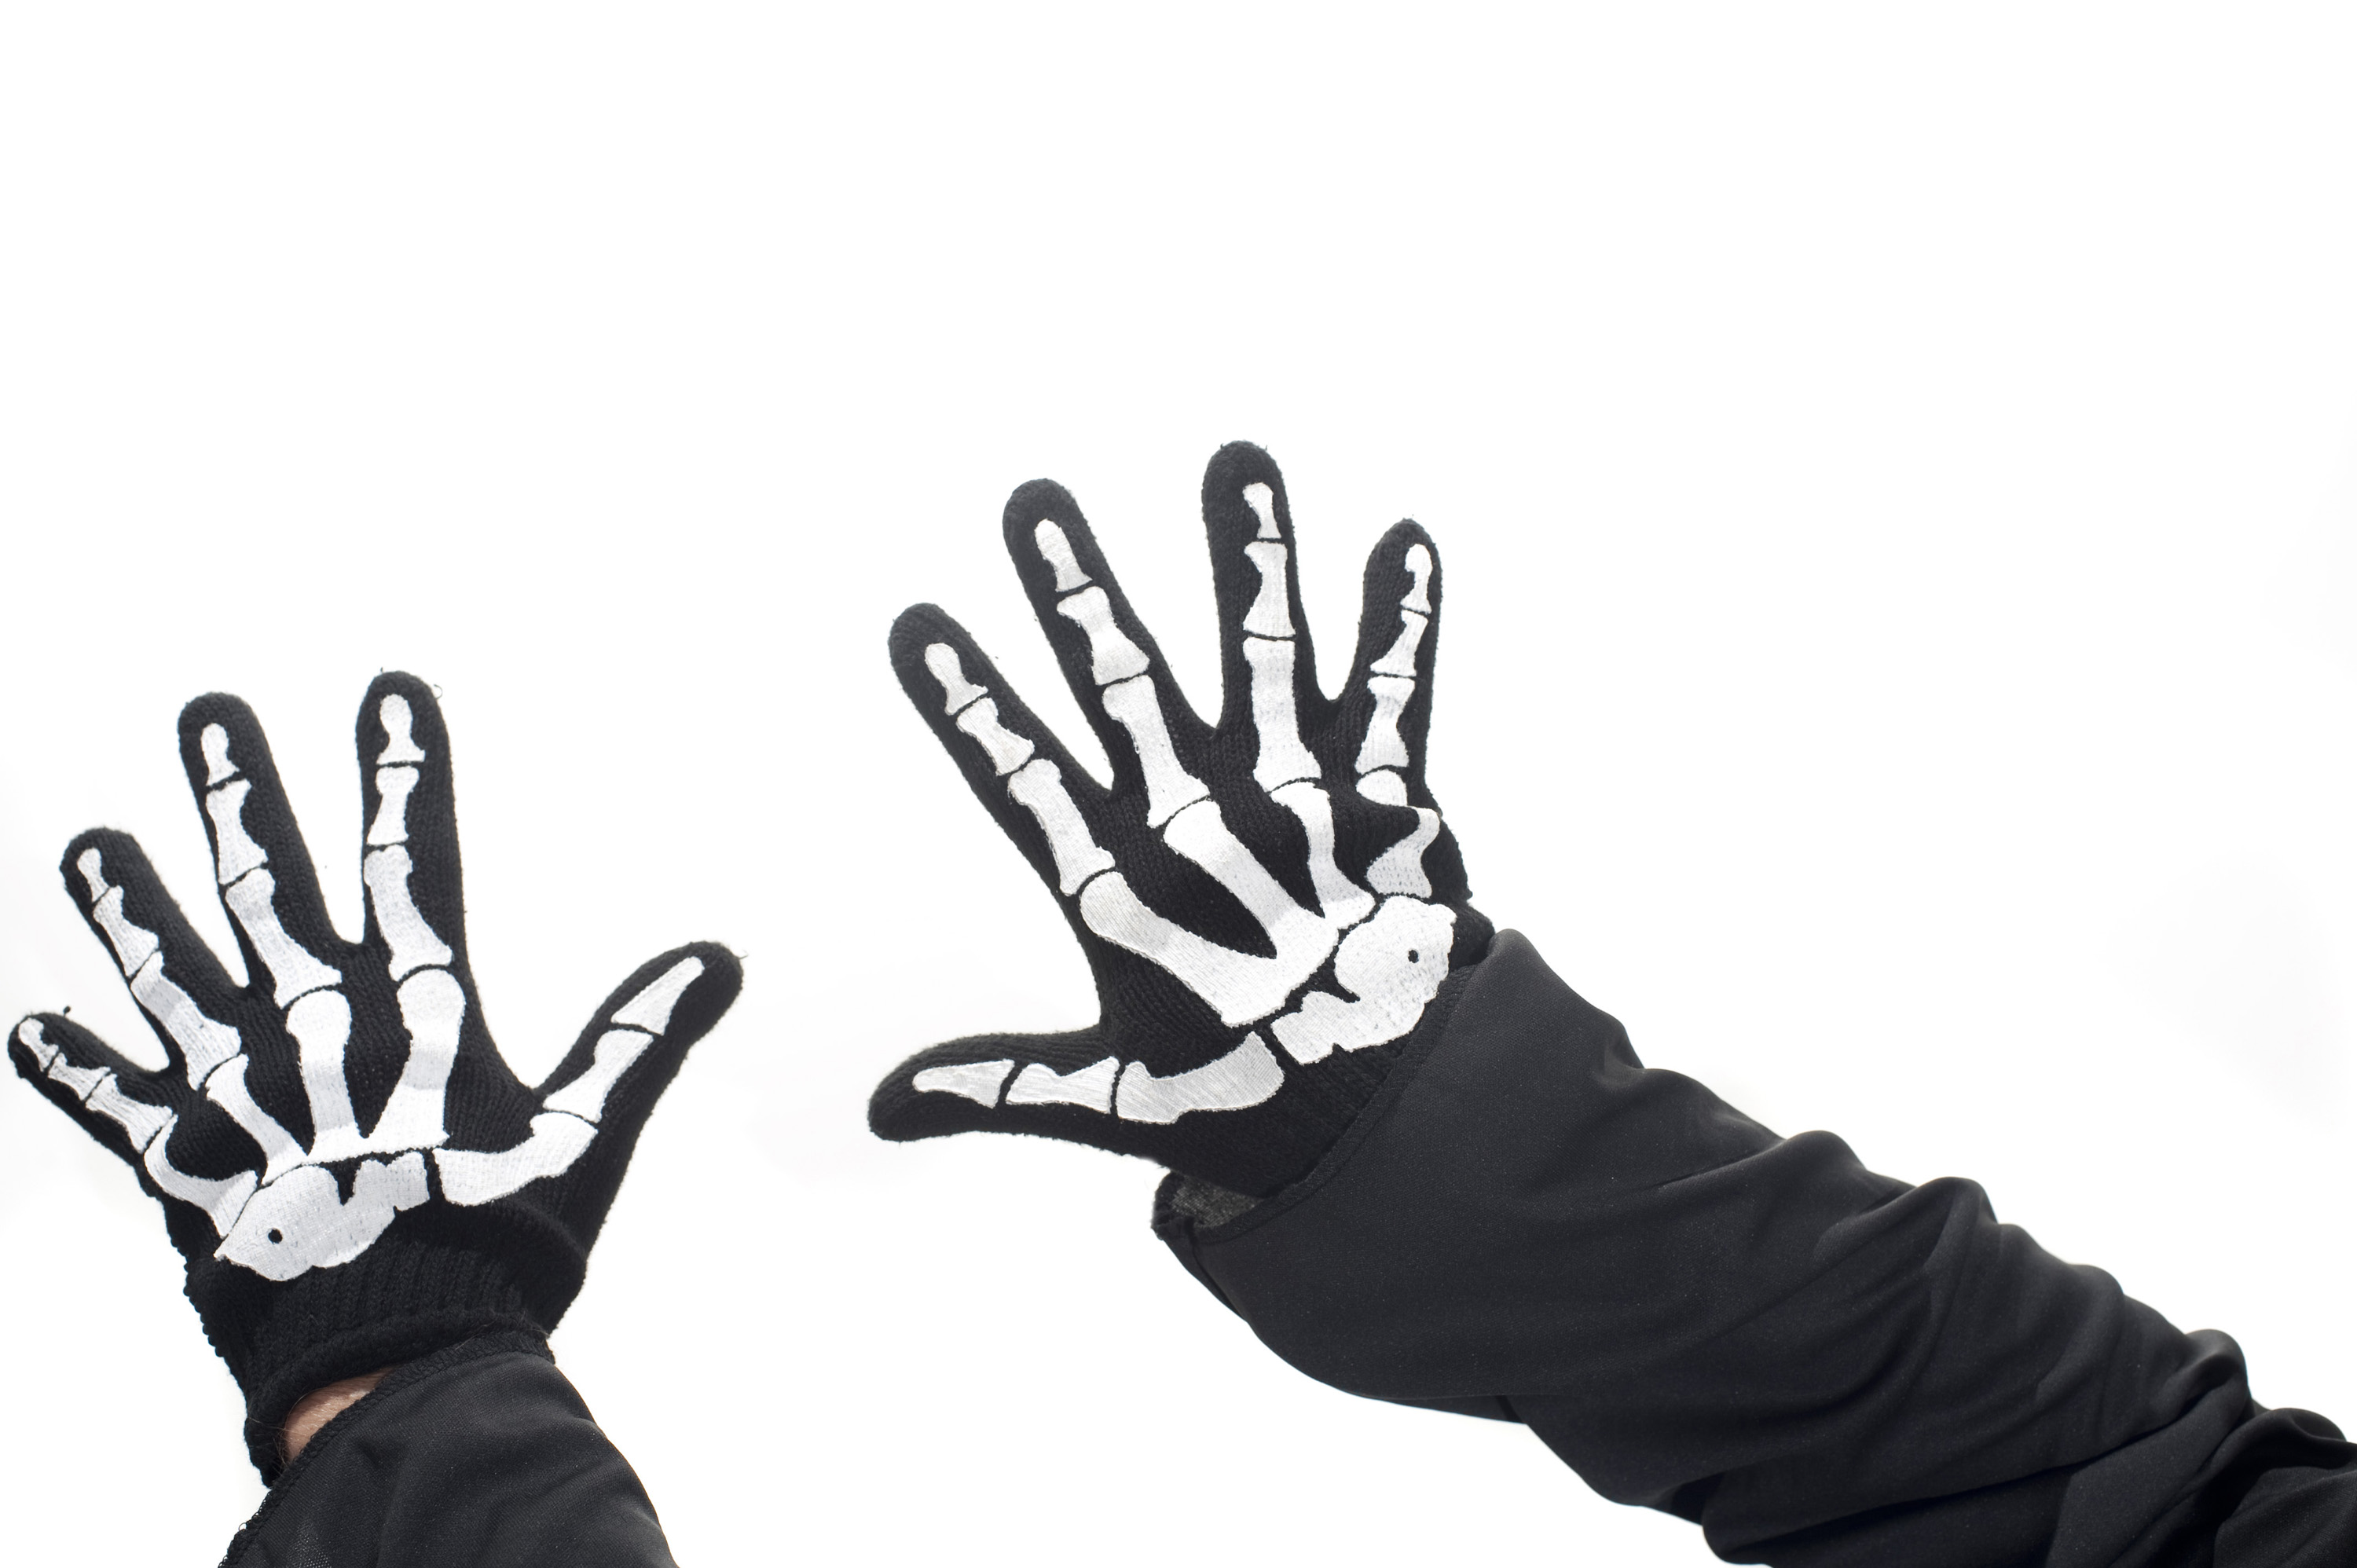 a pair of hands wearing novelty skeleton gloves